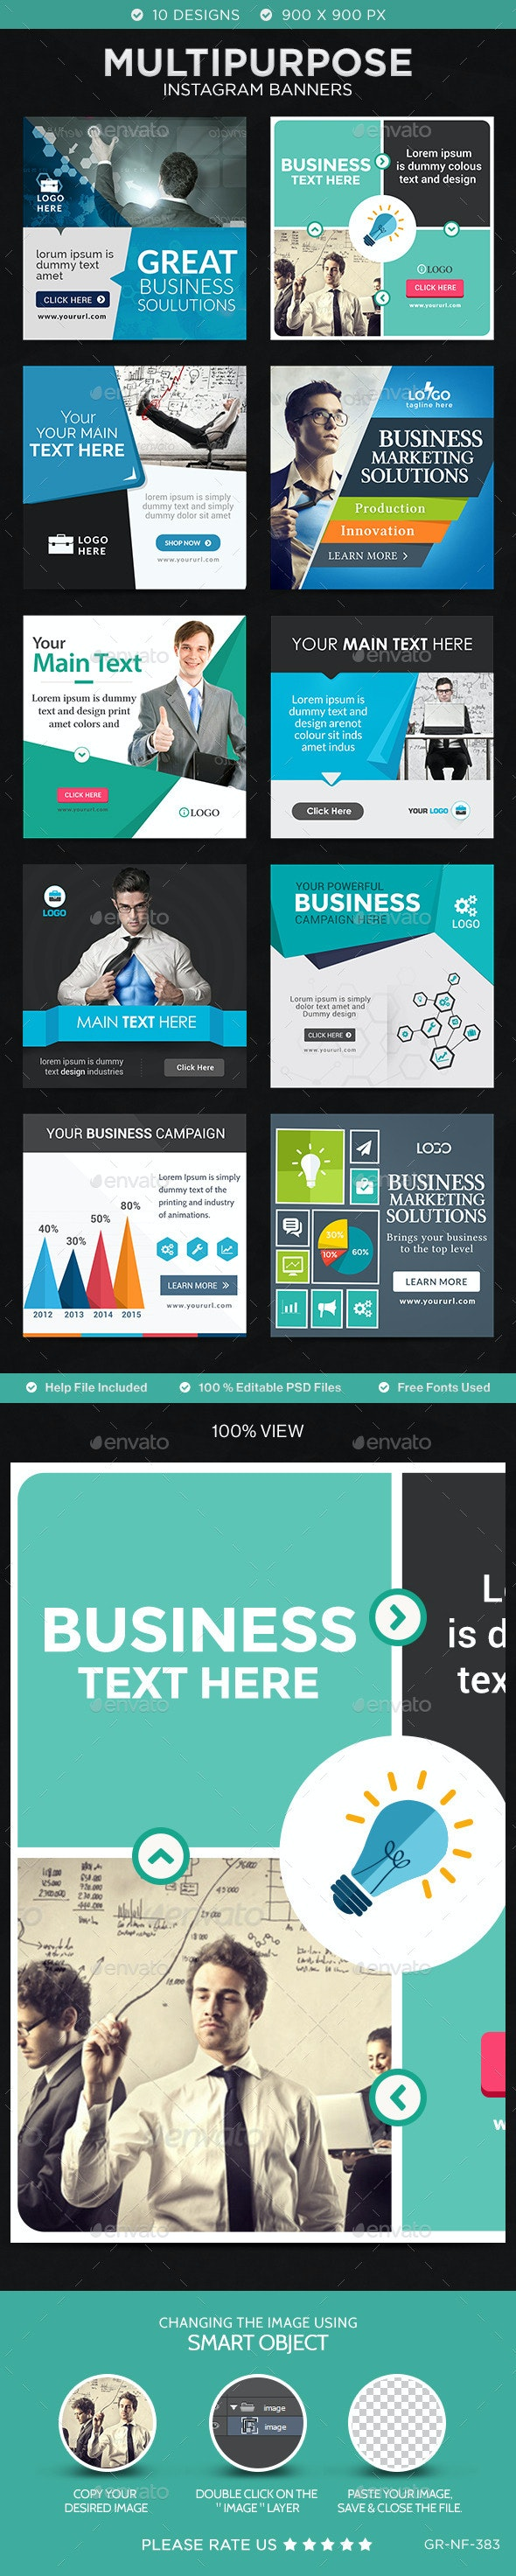 Business Instagram Templates - 10 Designs - Banners & Ads Web Elements